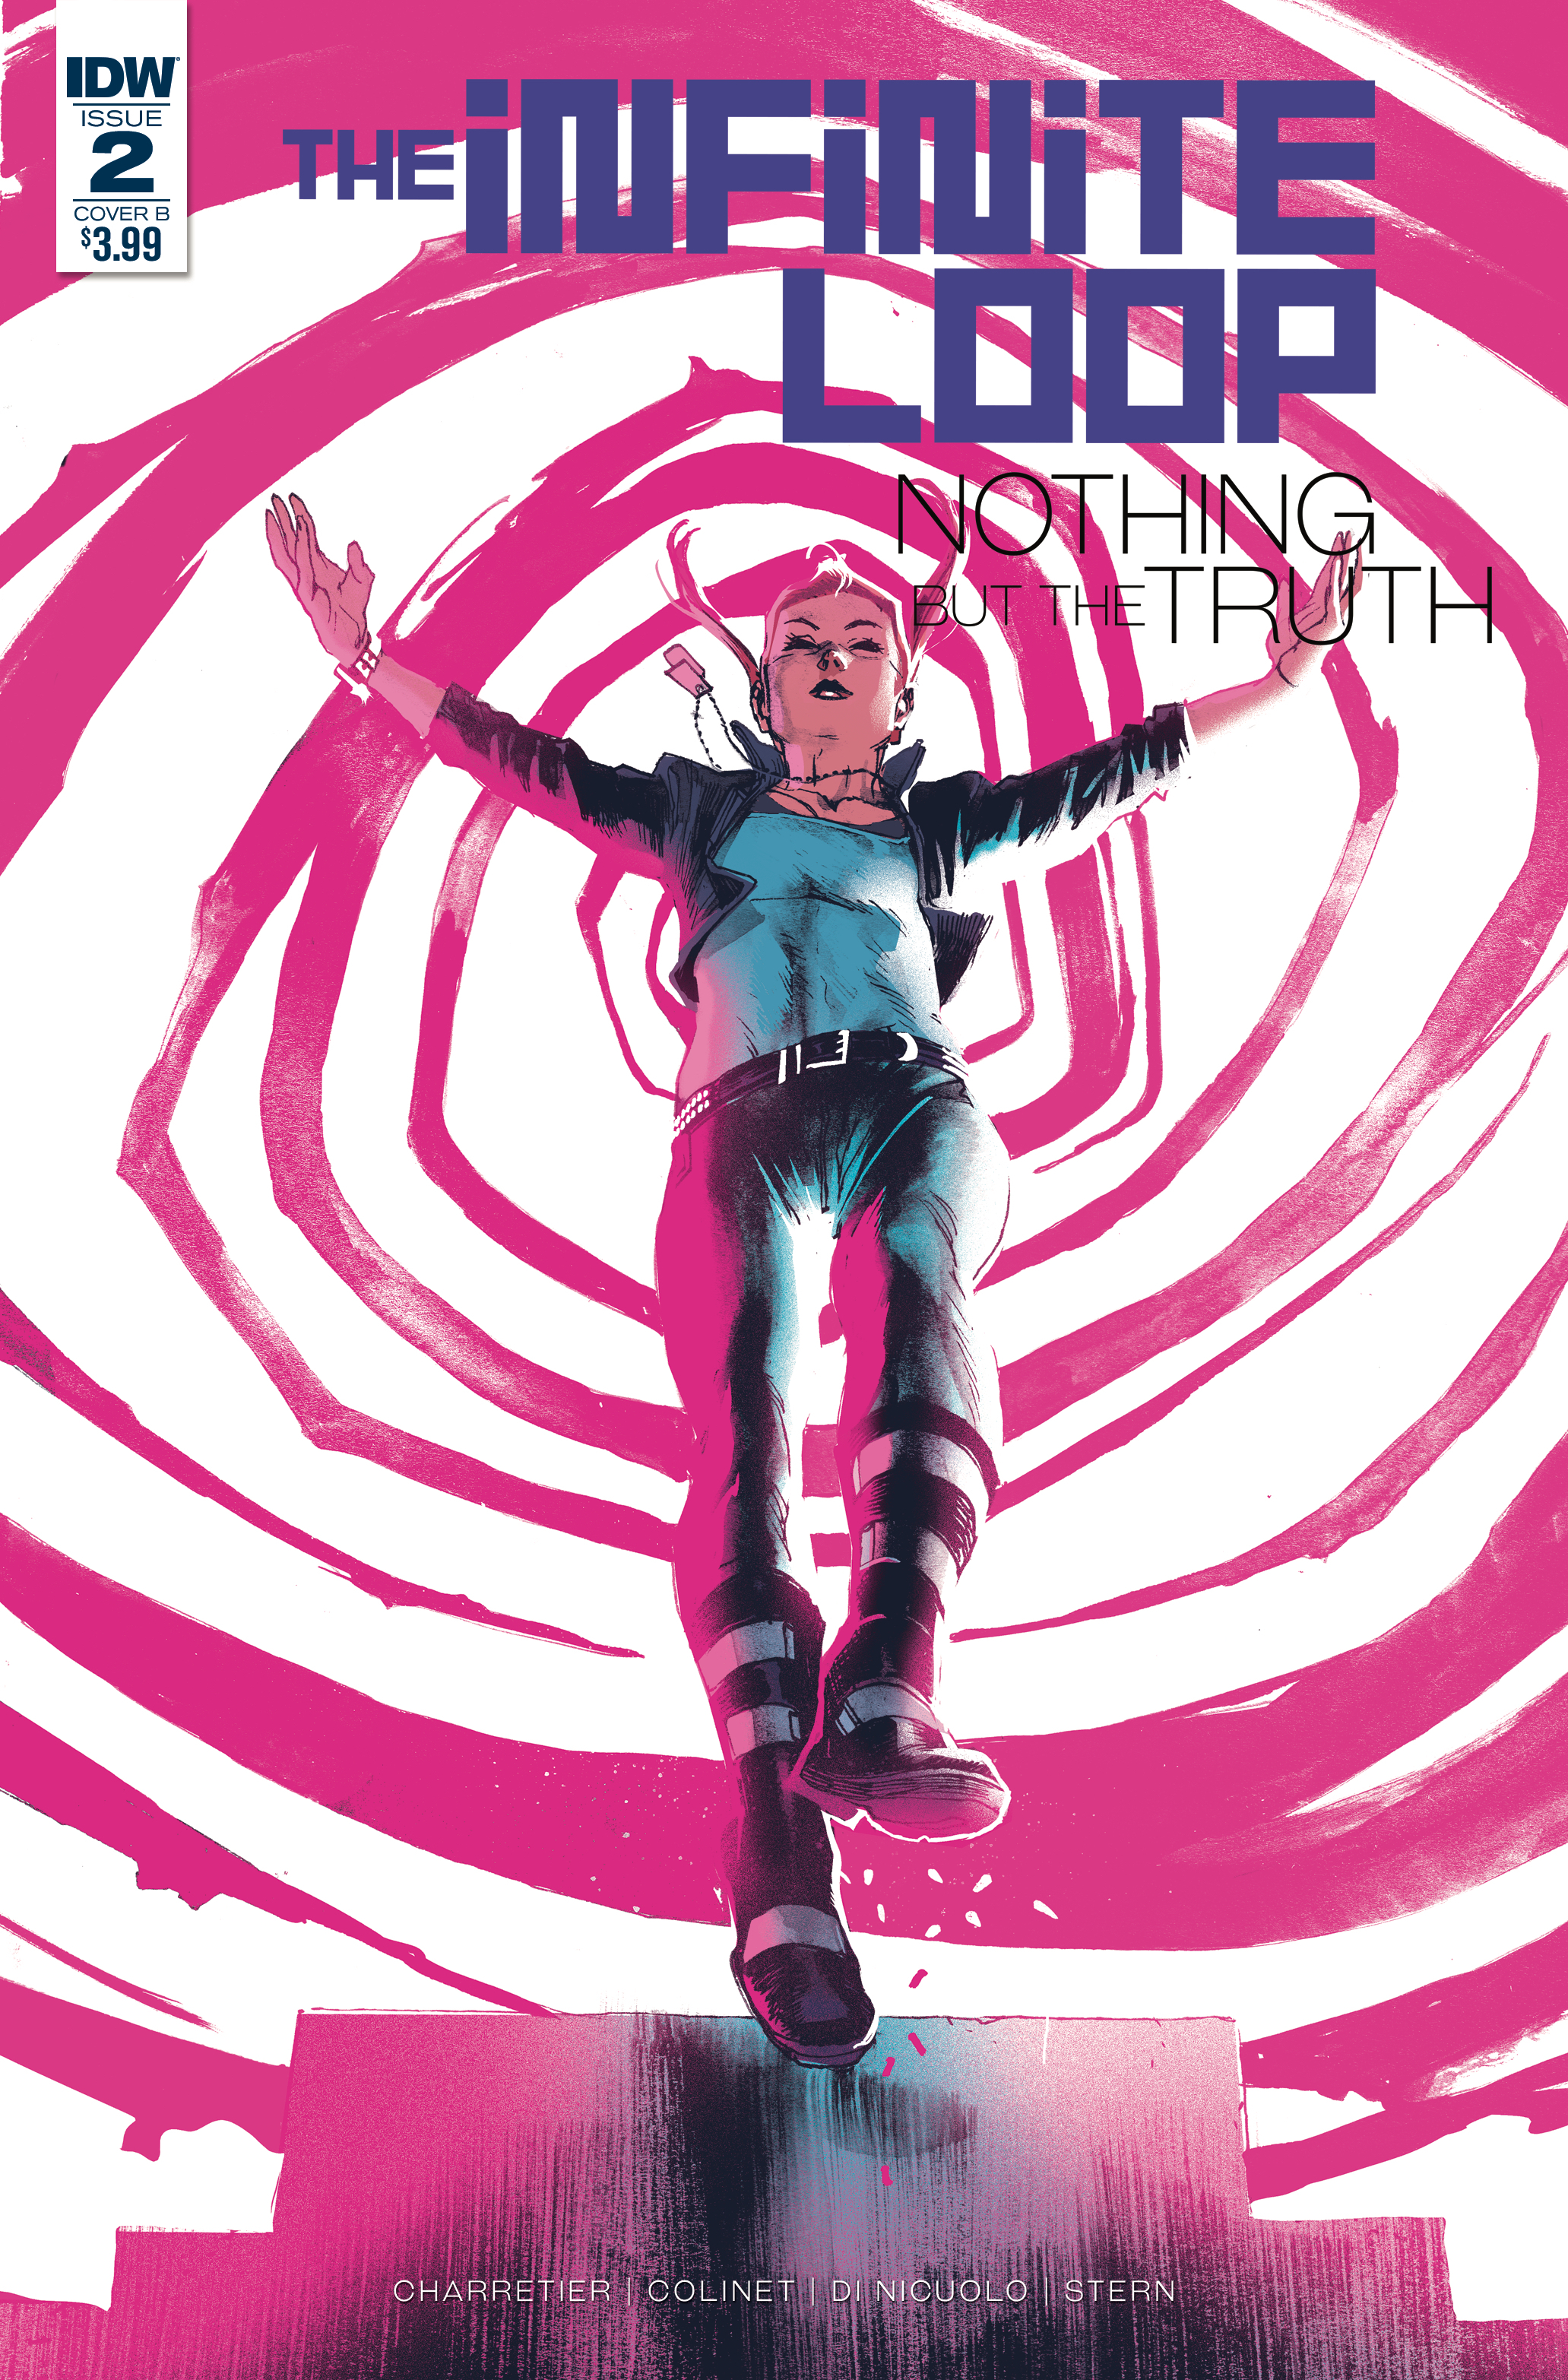 INFINITE LOOP NOTHING BUT THE TRUTH #2 (OF 6) CVR B ALBUQUER